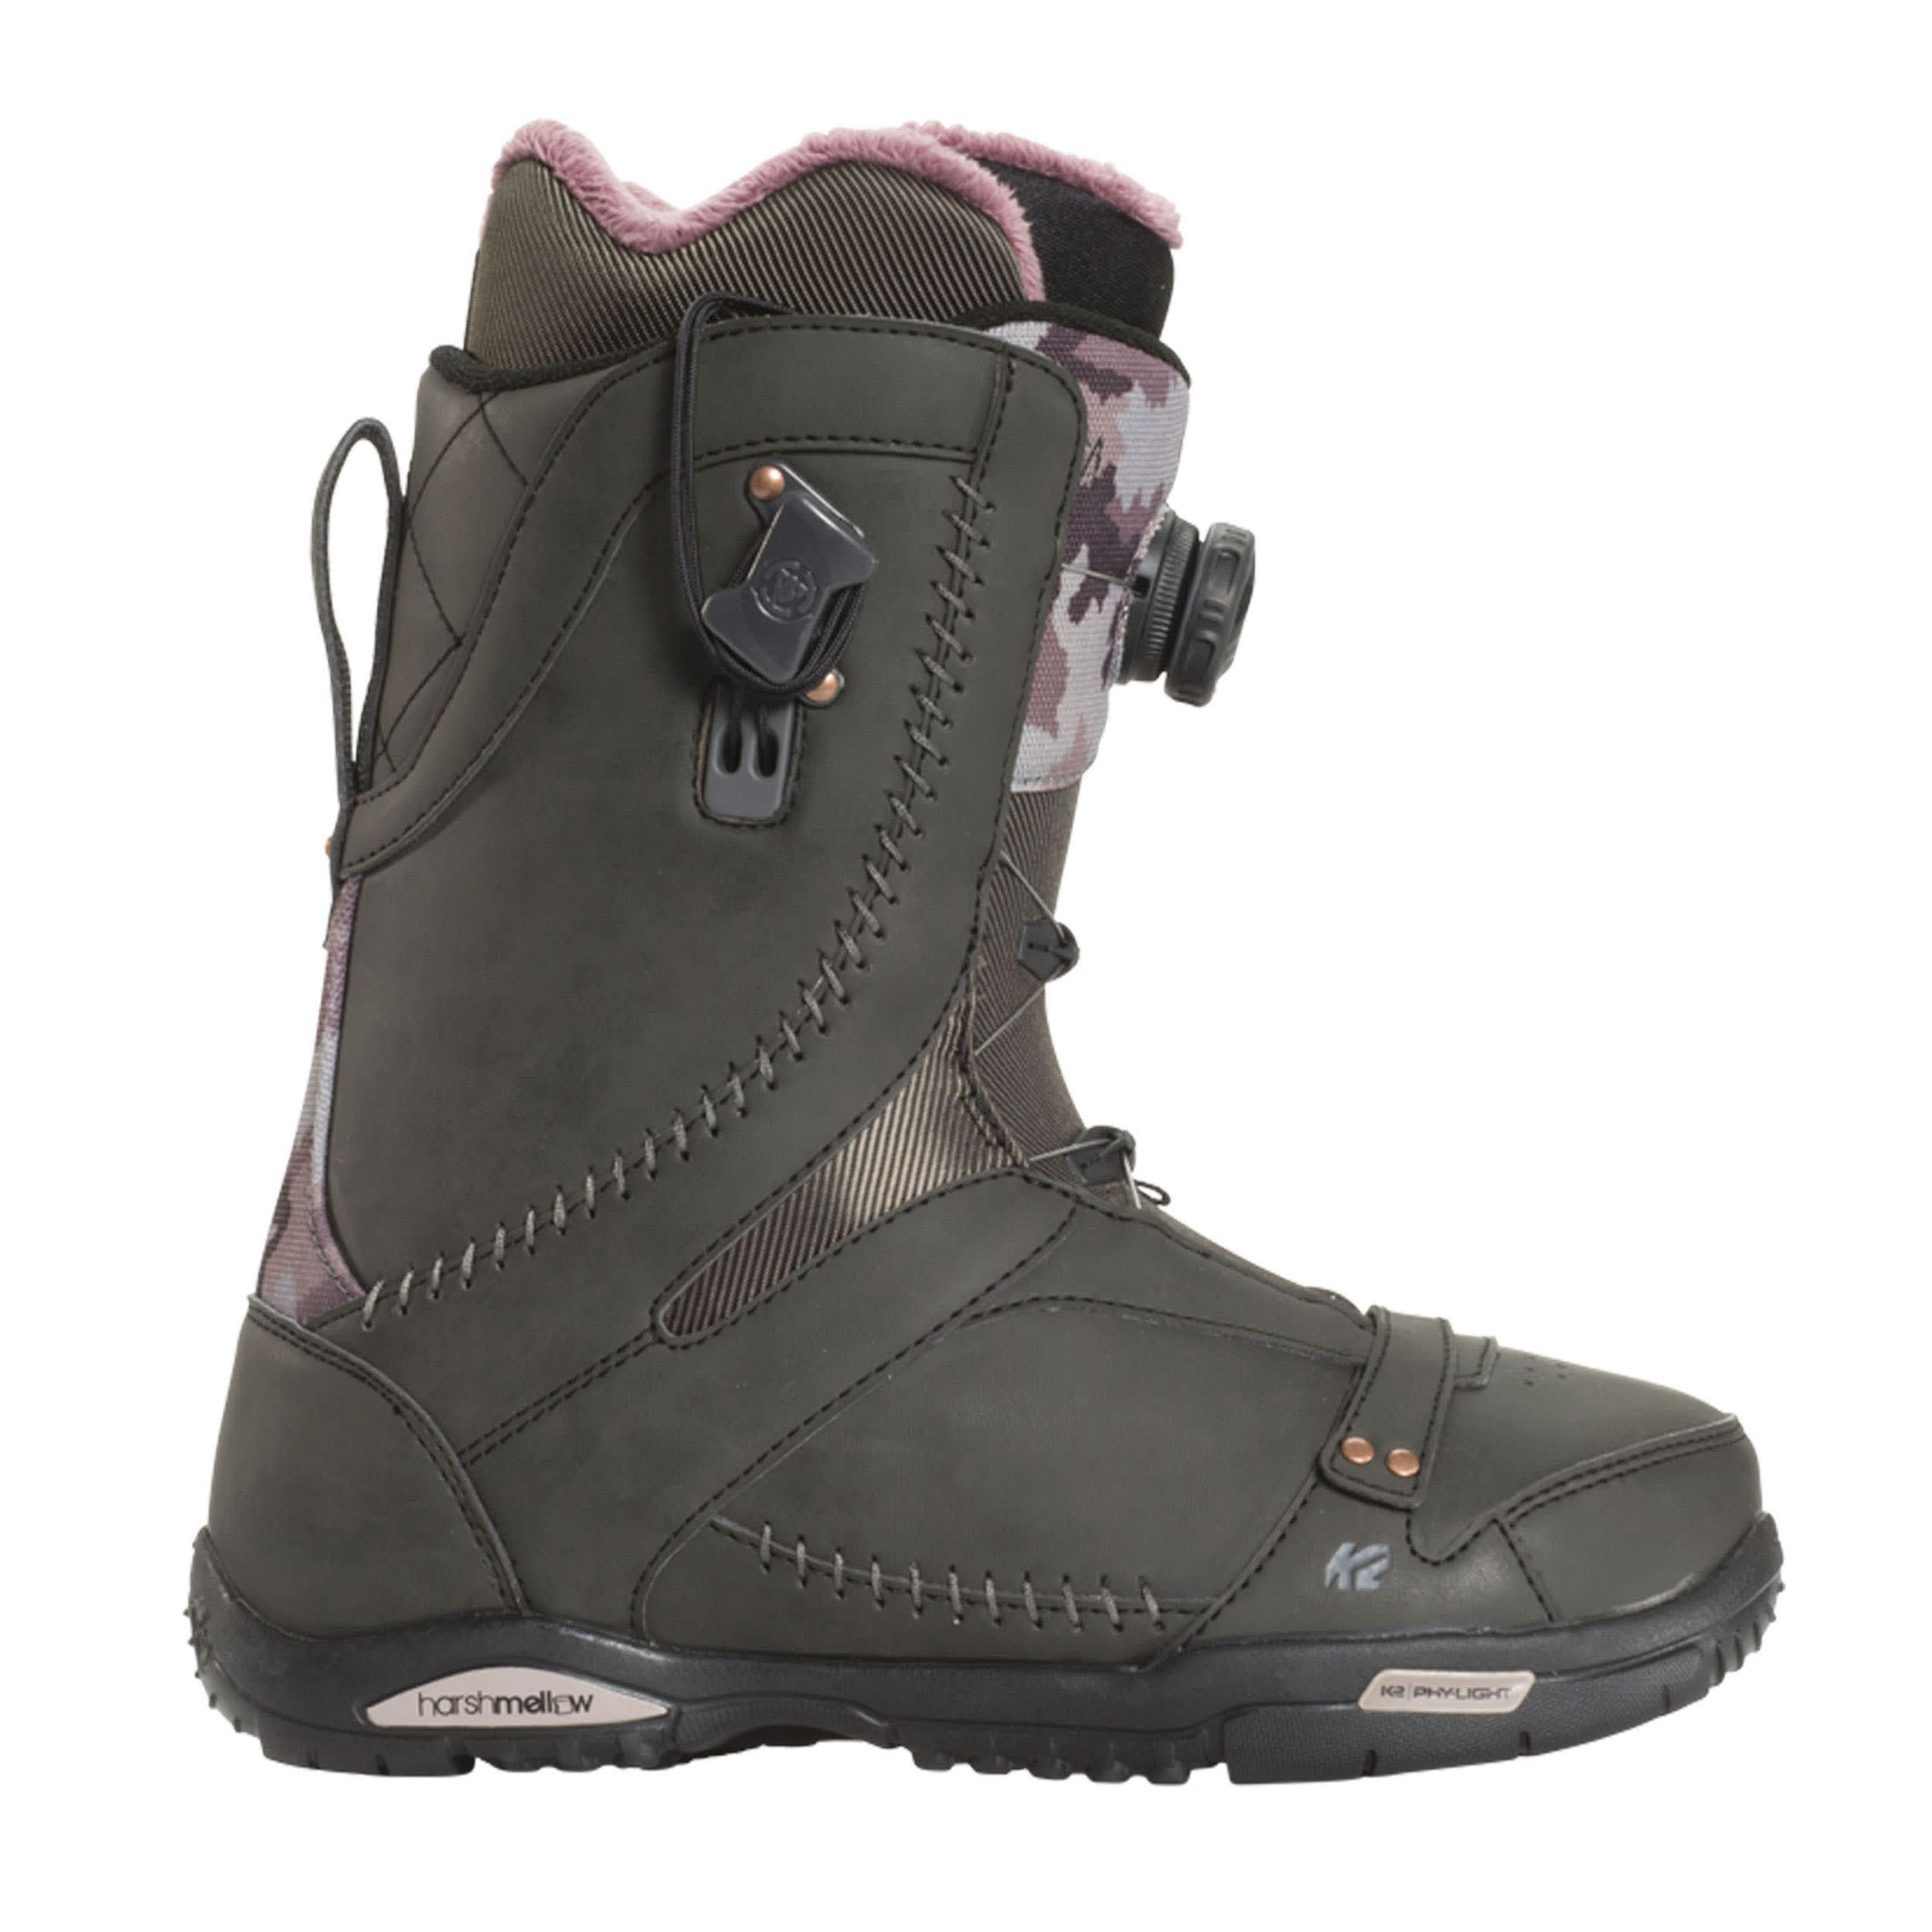 on sale k2 sapera snowboard boots womens up to 40